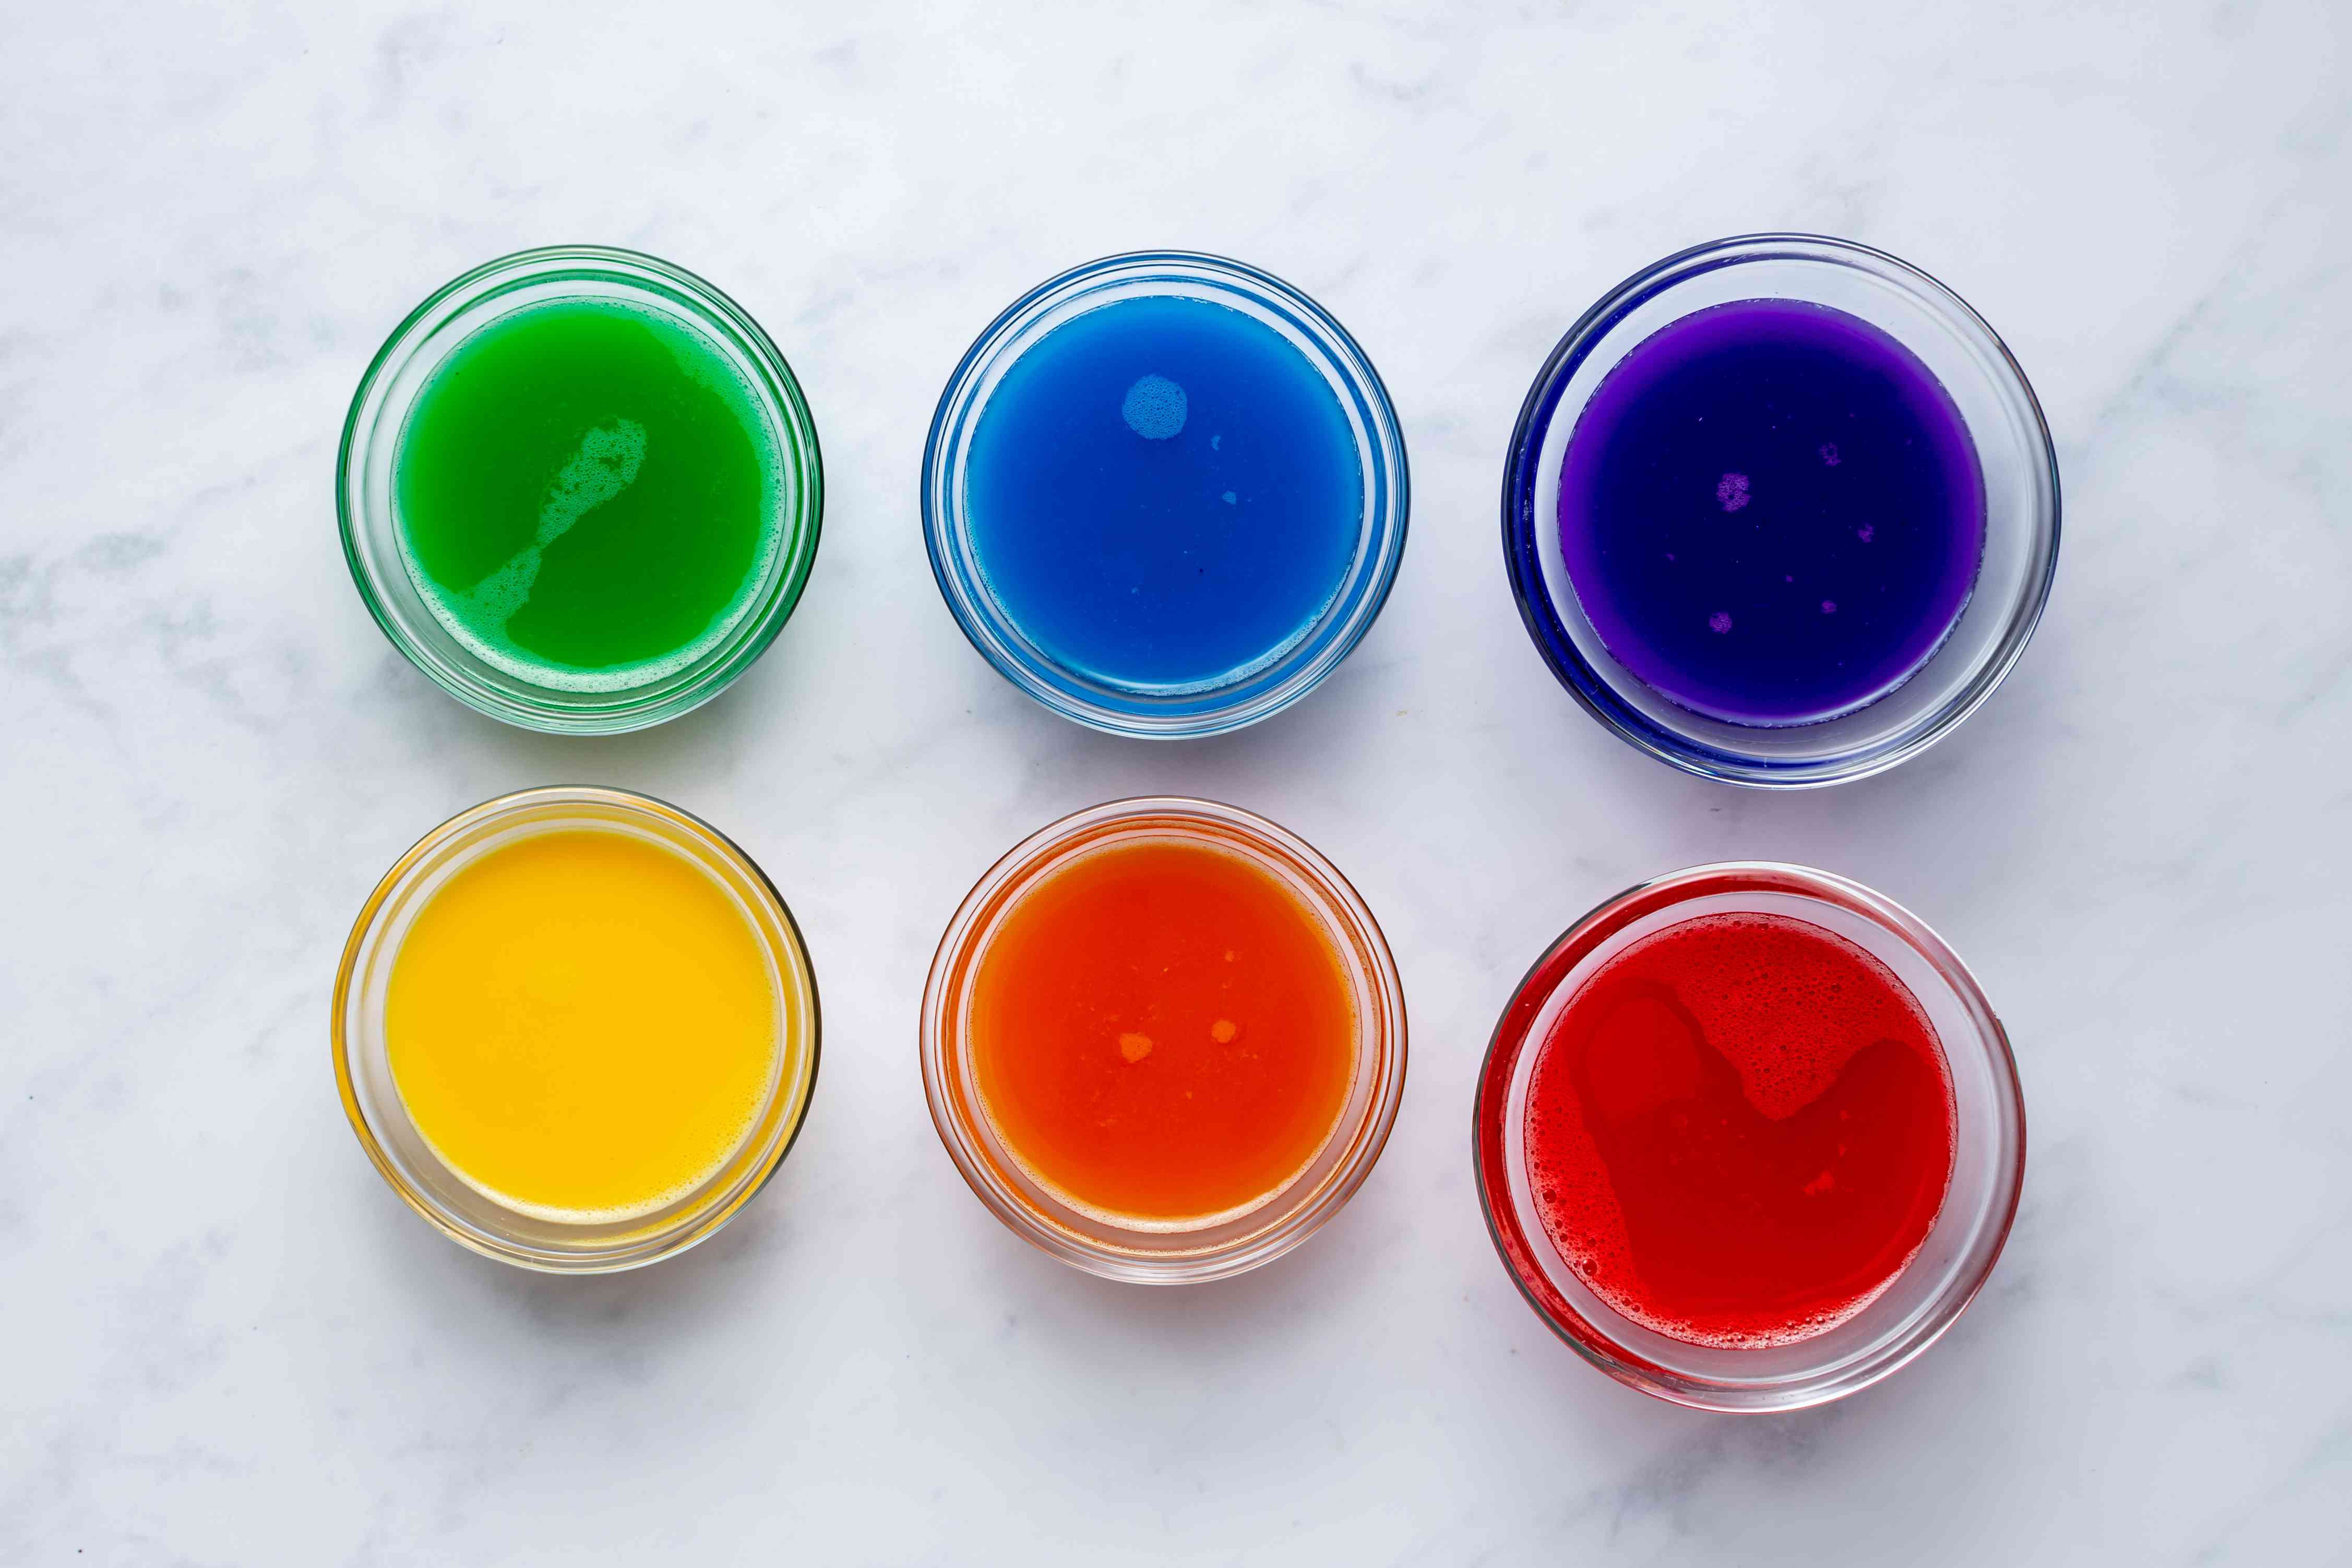 gelatin and food coloring in bowls